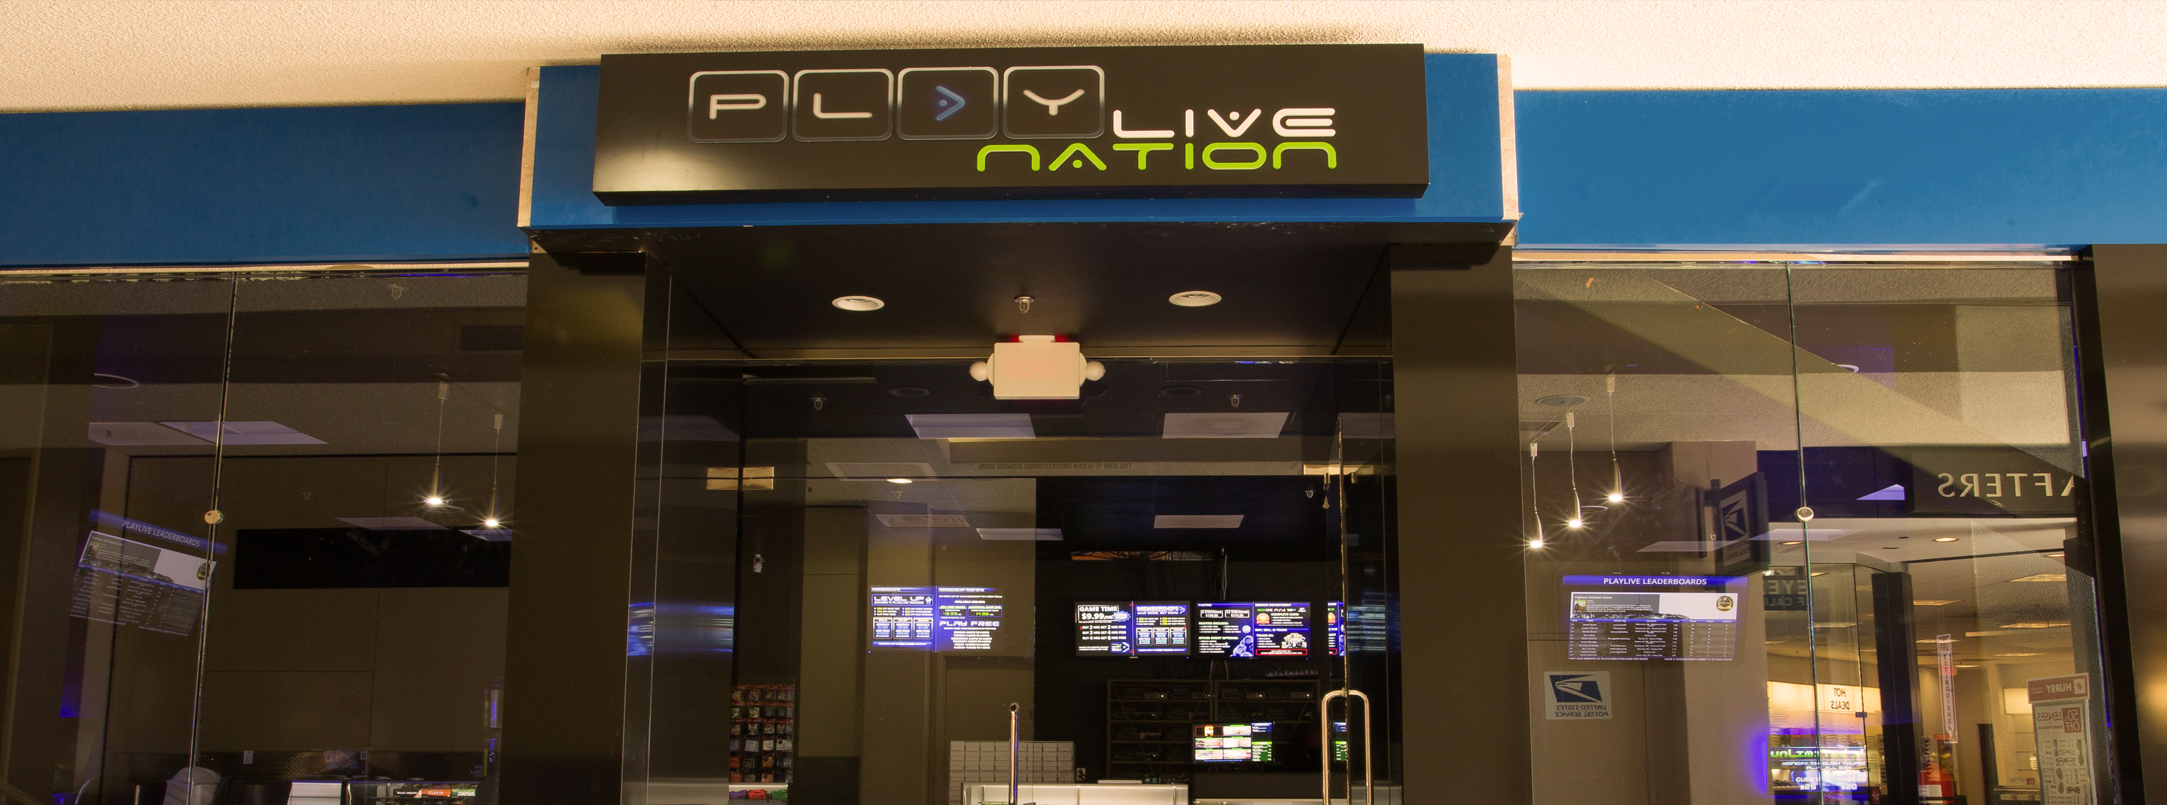 PlayLive Nation, Hayward